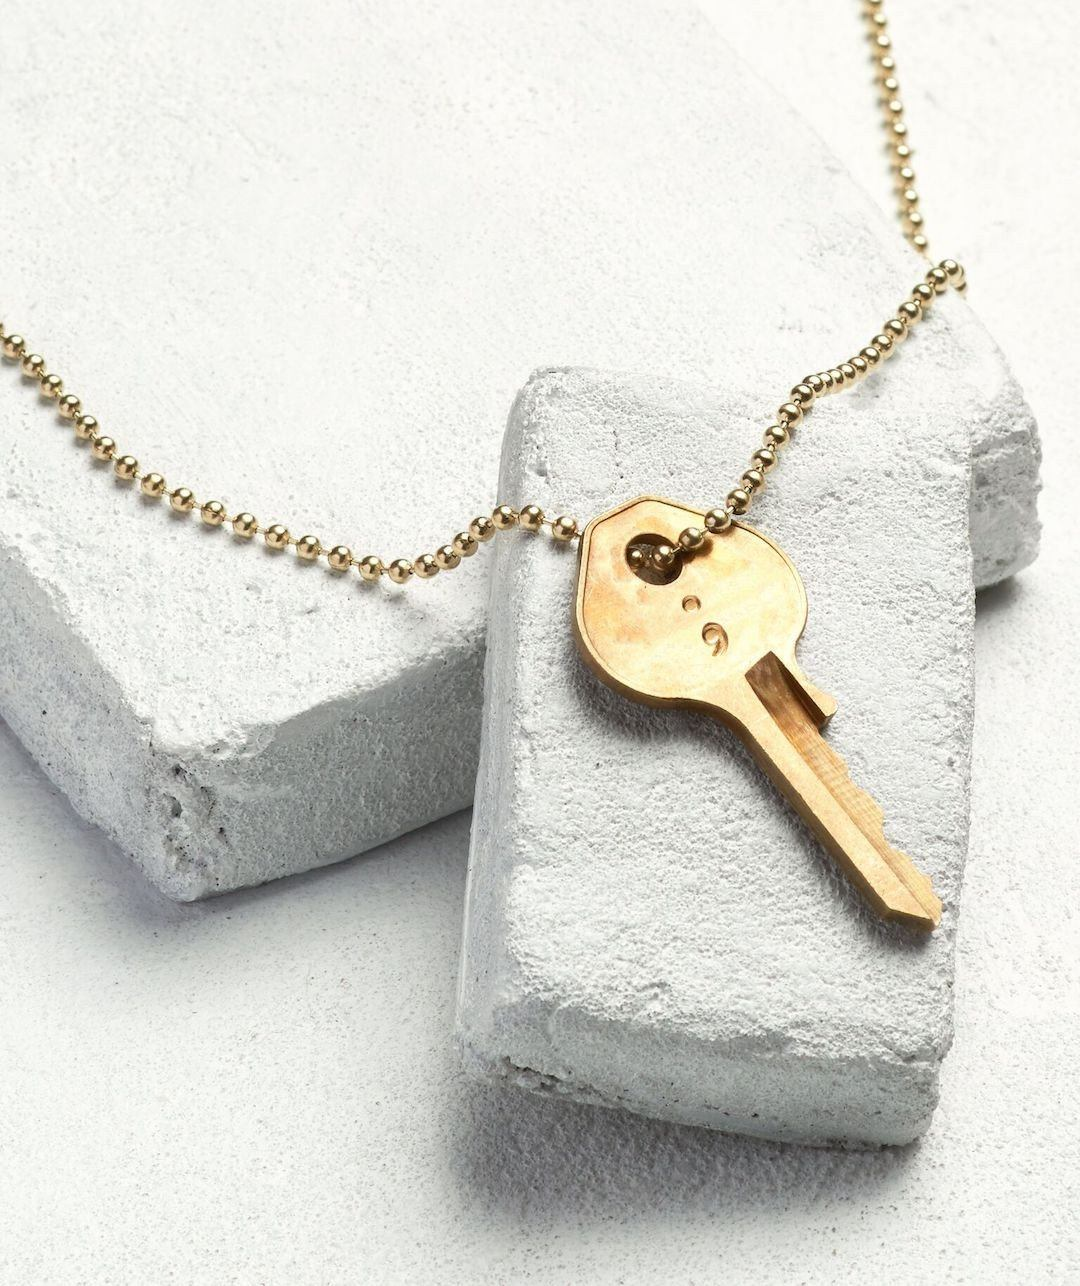 Semicolon Classic Ball Chain Key Necklace Necklaces The Giving Keys SEMICOLON Gold Ball